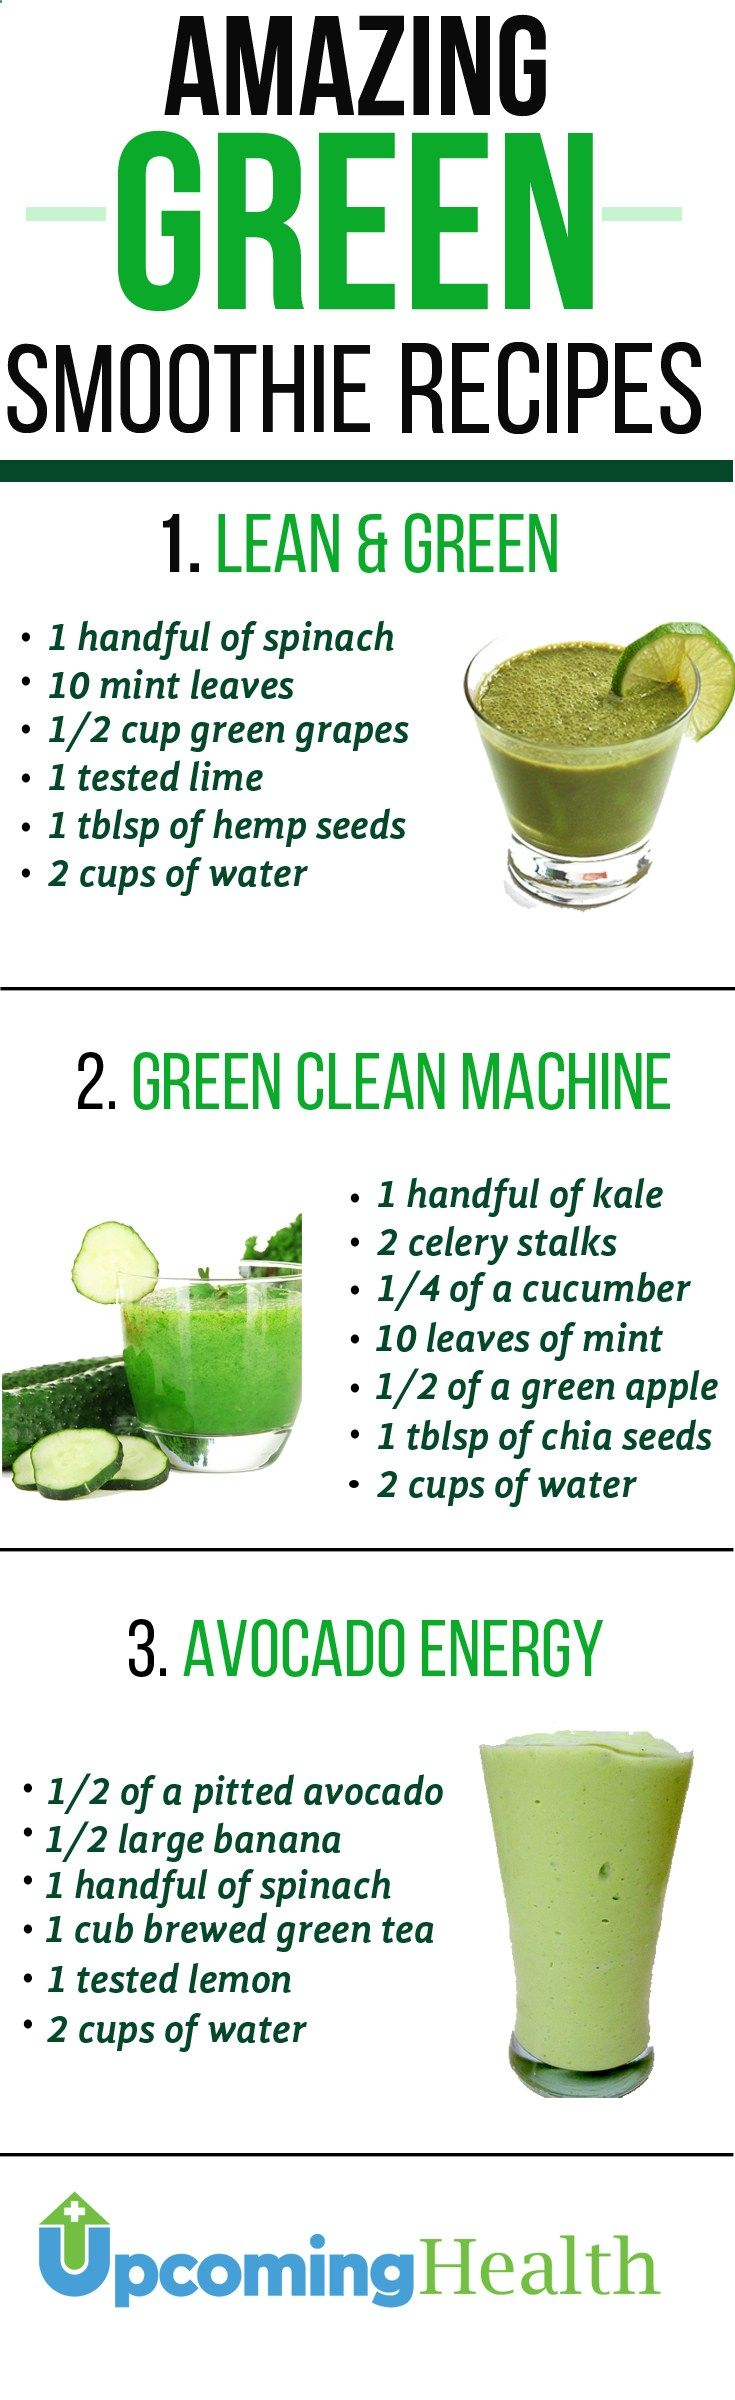 See the benefits of green smoothies and how they will change your health. Check out some of the best green smoothie recipes out there. Dont miss out!